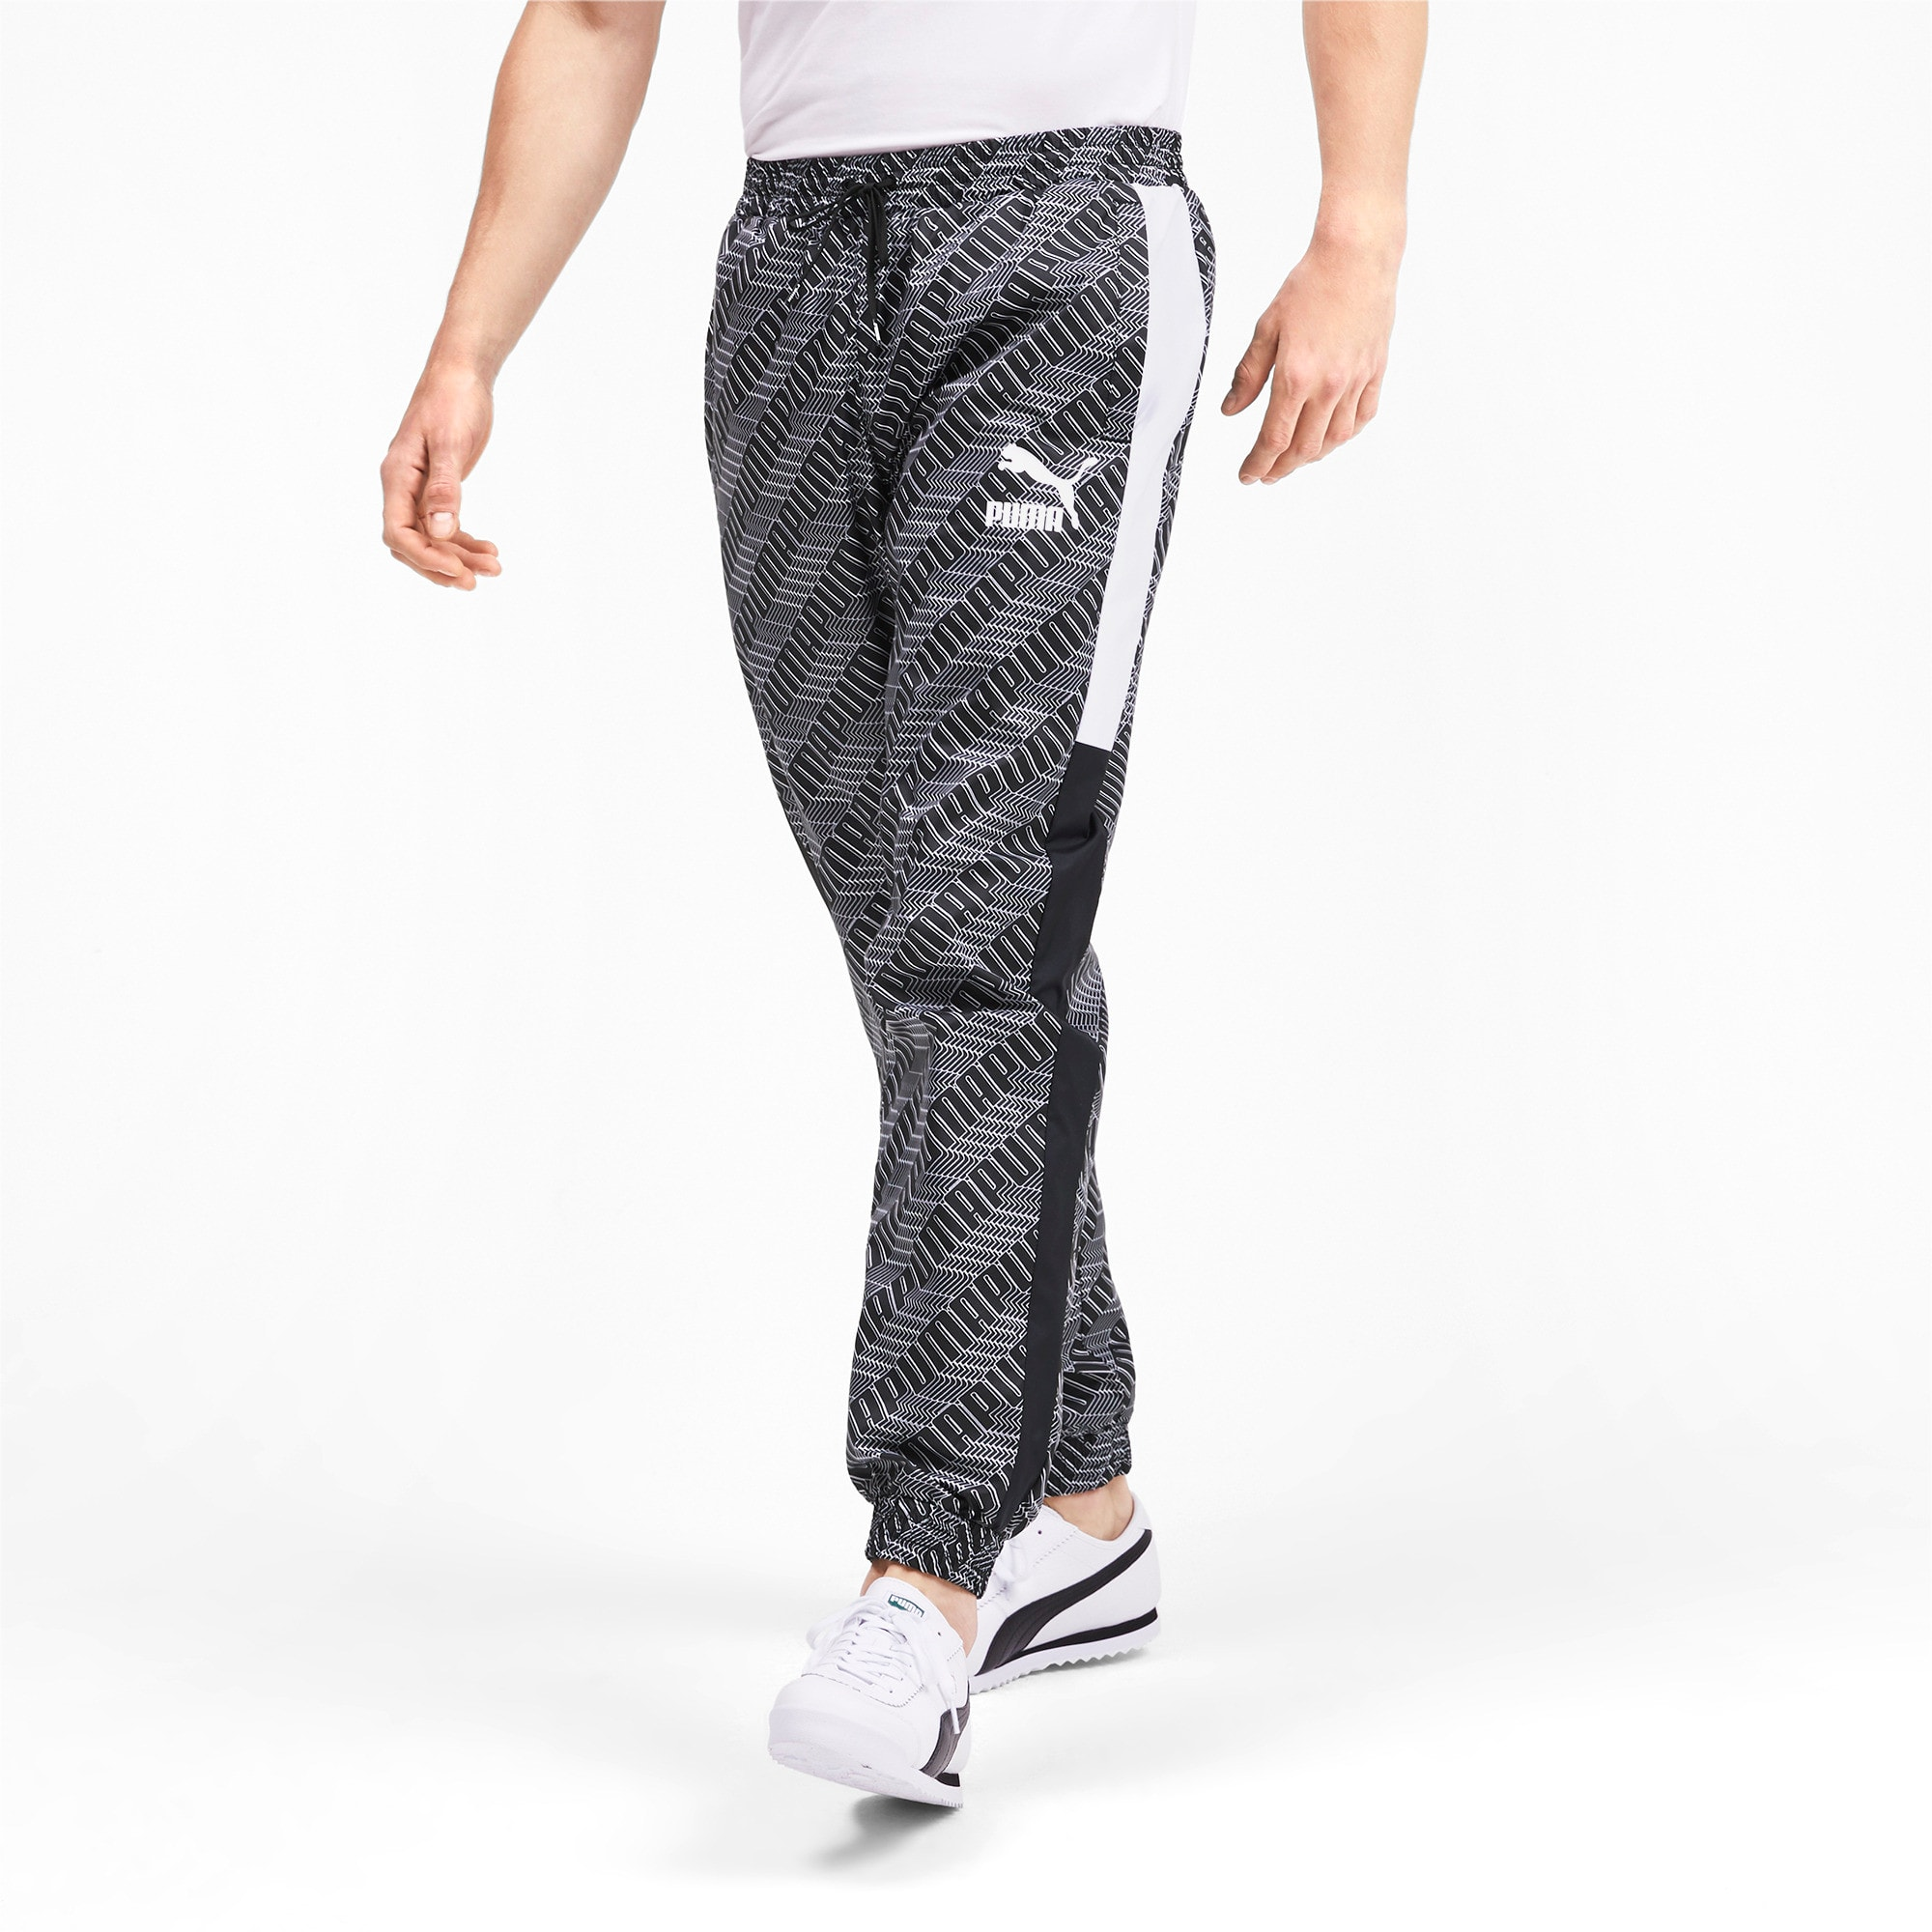 Thumbnail 2 of T7 AOP Panel Men's Track Pants, Puma Black-Repeat logo, medium